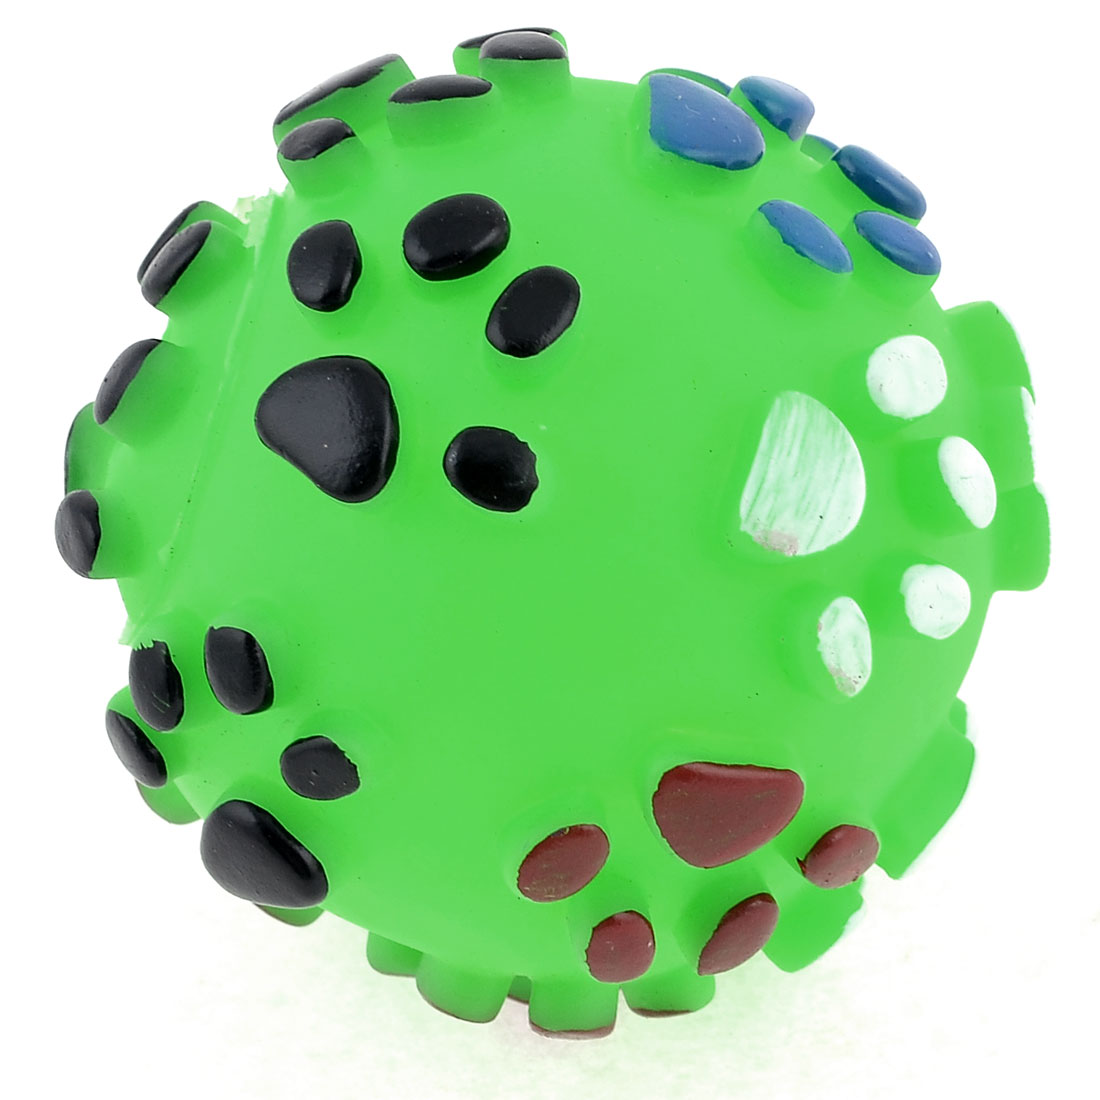 Green Rubber Paw Pattern Round Ball Shape Squeaky Toy for Pet Dog Chihuaha